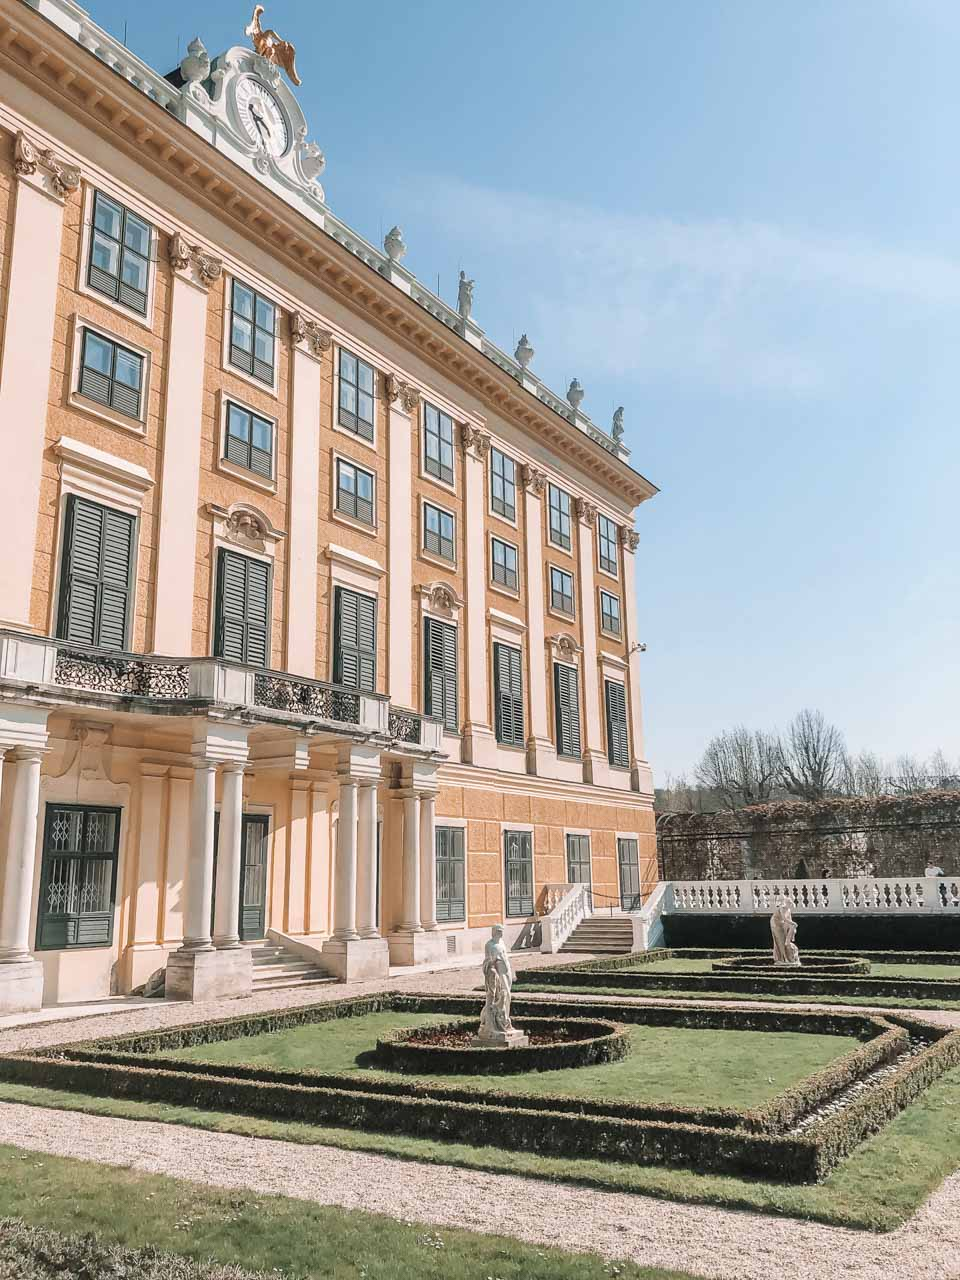 The outside of the Schönbrunn Palace in Vienna, Austria